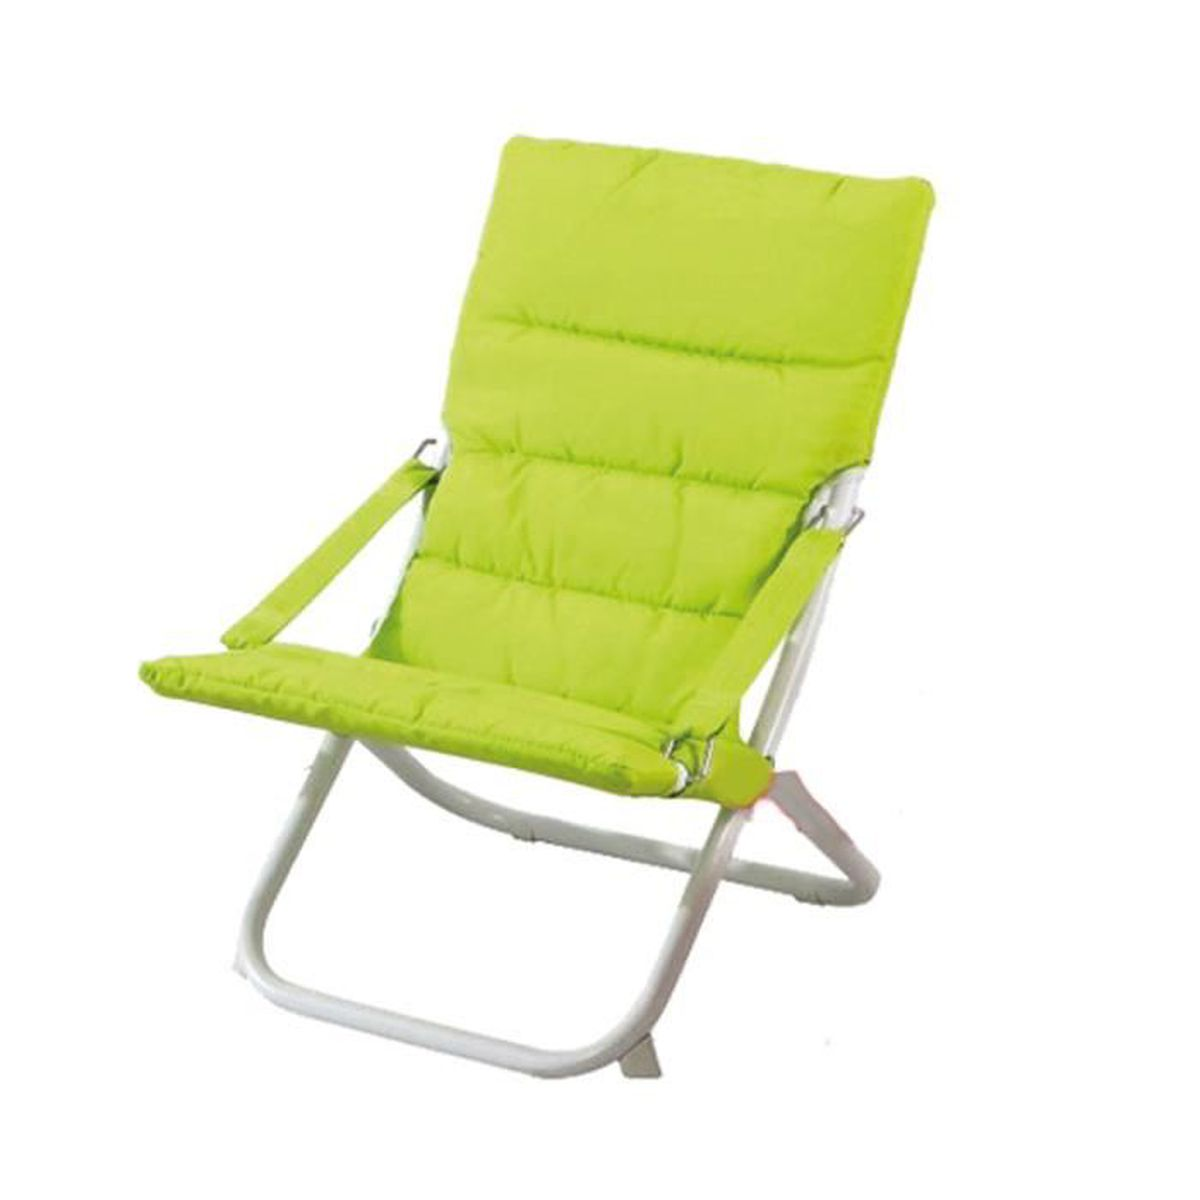 chilienne ange enfant matelass e vert anis vert anis achat vente chaise vert cdiscount. Black Bedroom Furniture Sets. Home Design Ideas